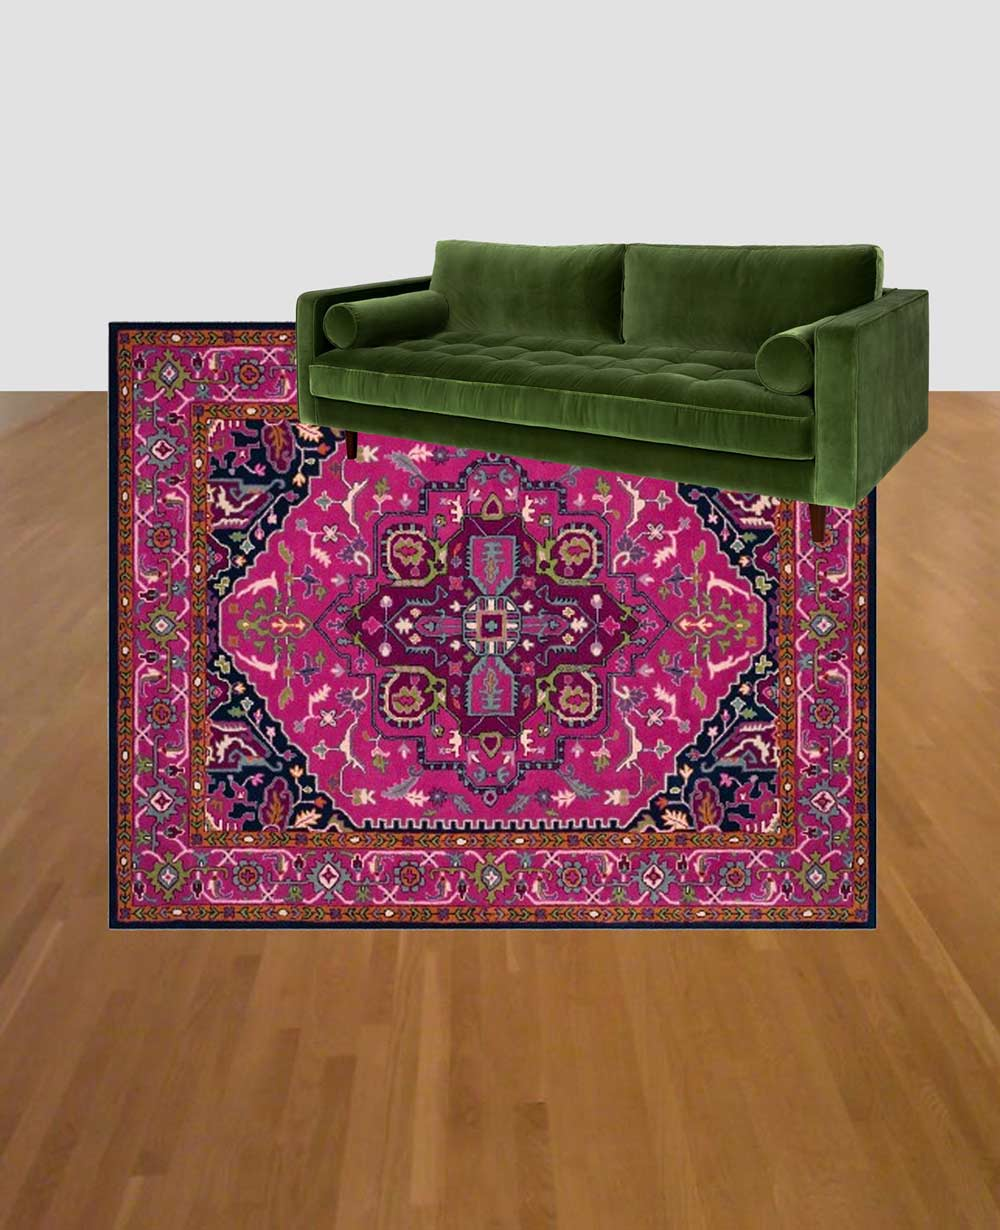 Green couch and pink rug combo: Article Sven Grass Green Velvet couch with Target Safavieh Alden rug mockup